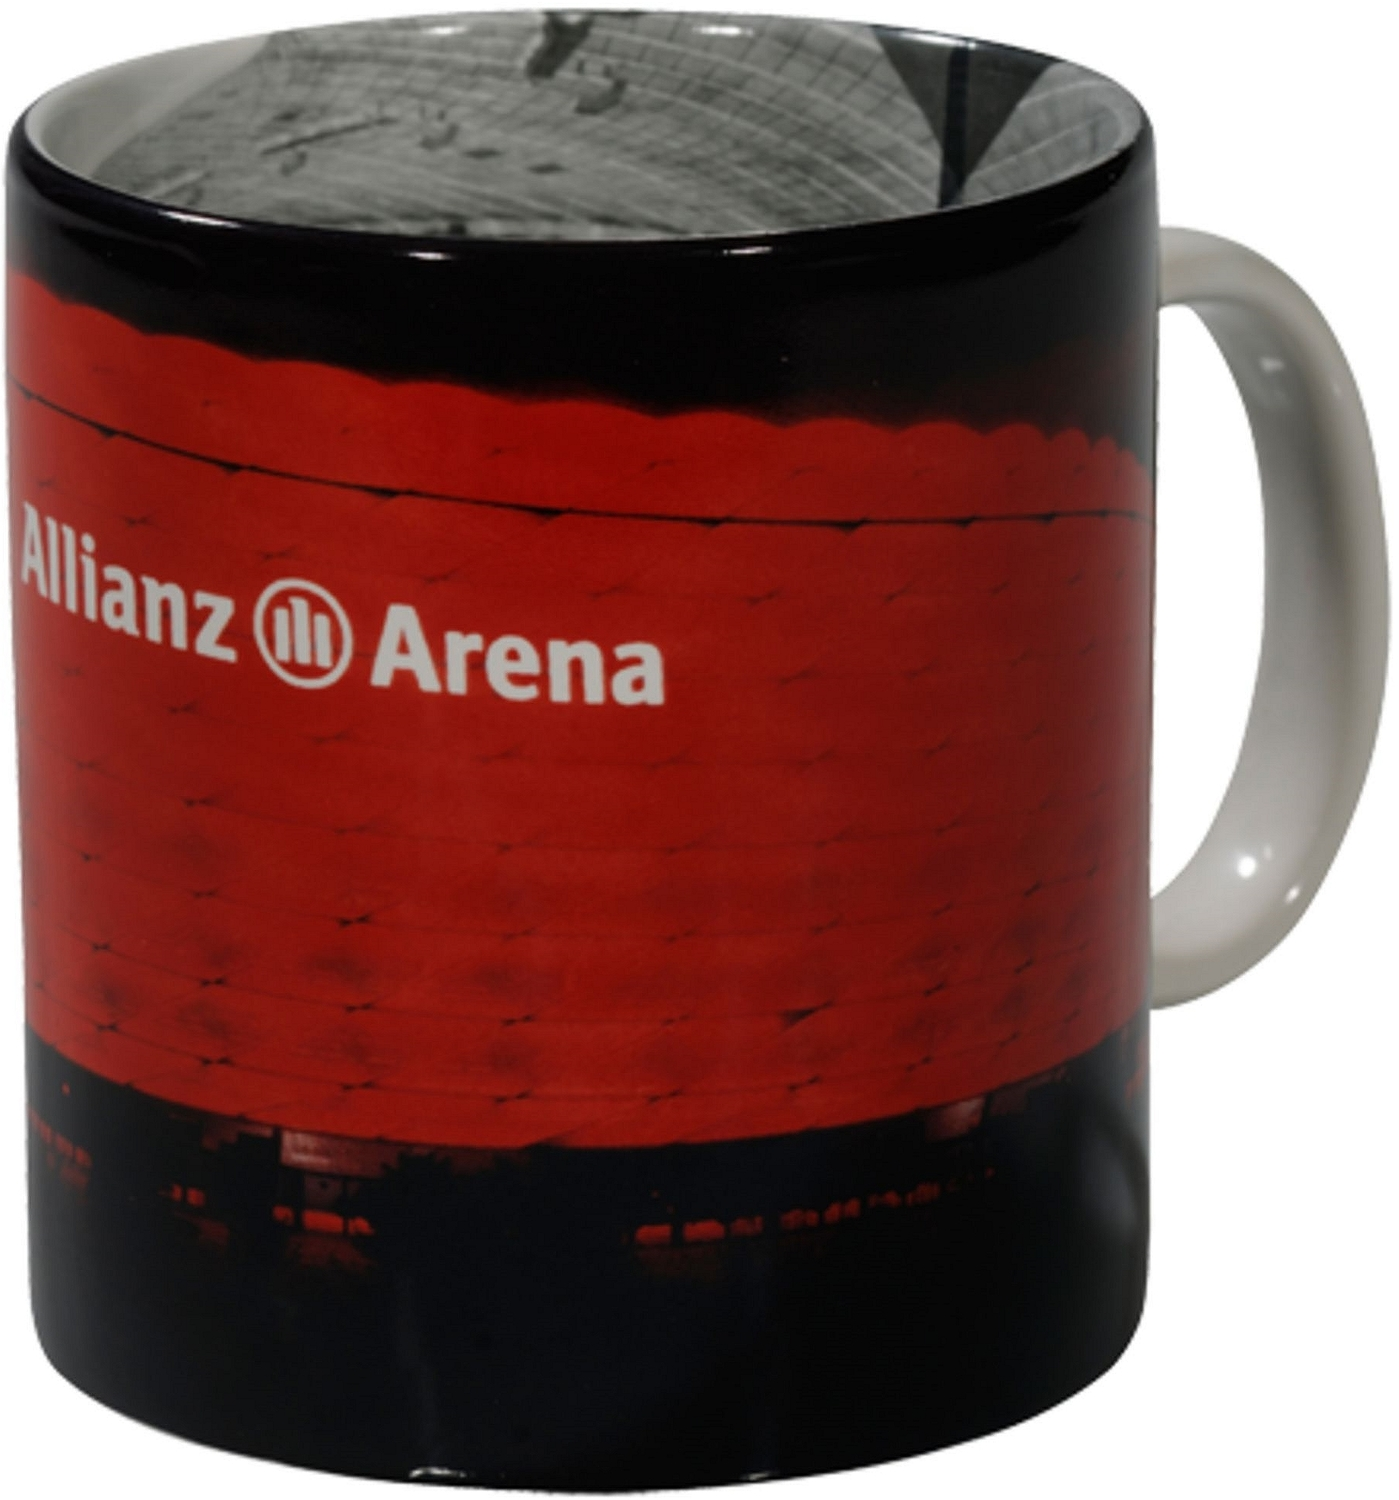 fc bayern m nchen kaffeebecher xxl allianz arena. Black Bedroom Furniture Sets. Home Design Ideas